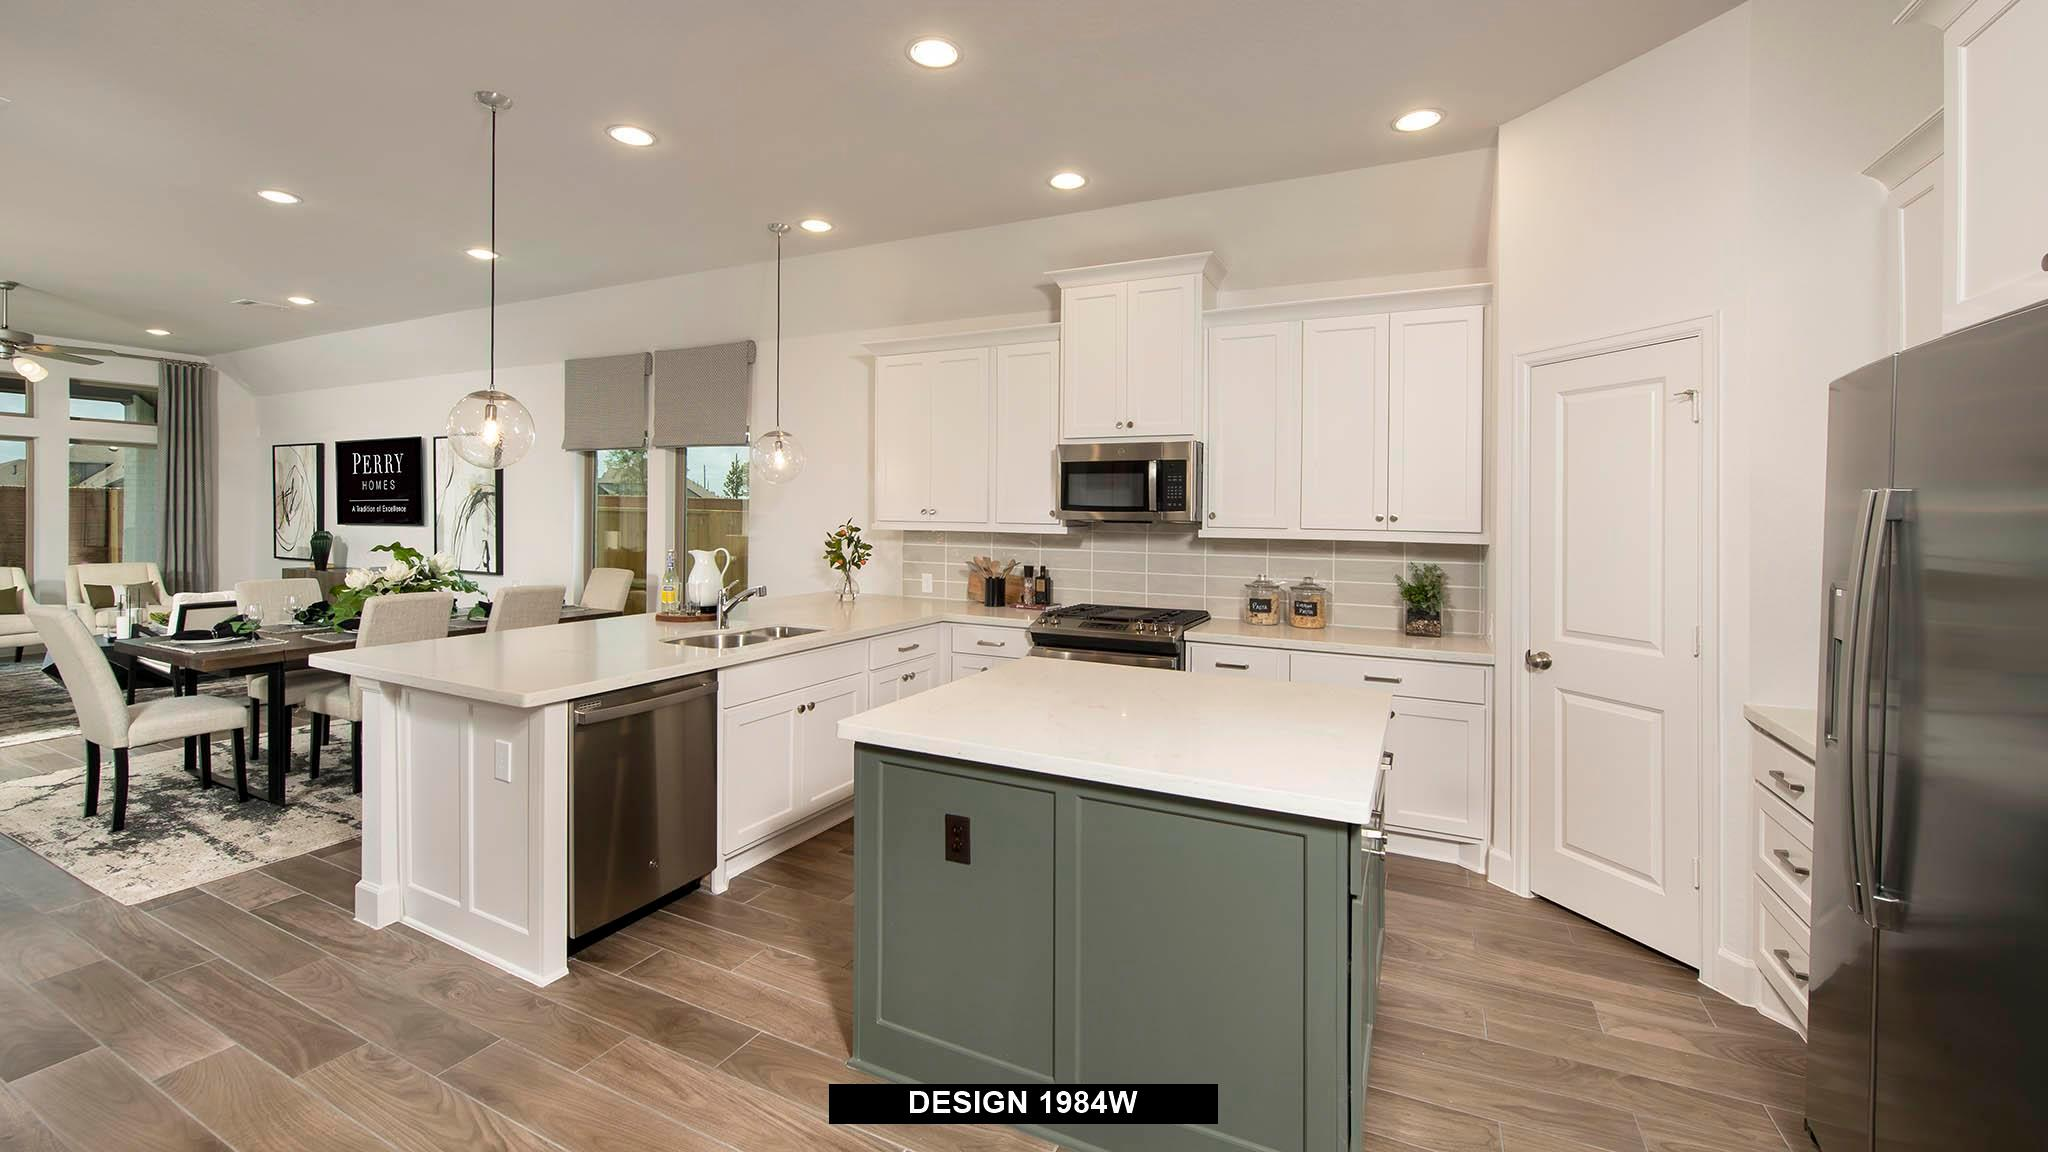 Kitchen featured in the 1984W By Perry Homes in San Antonio, TX